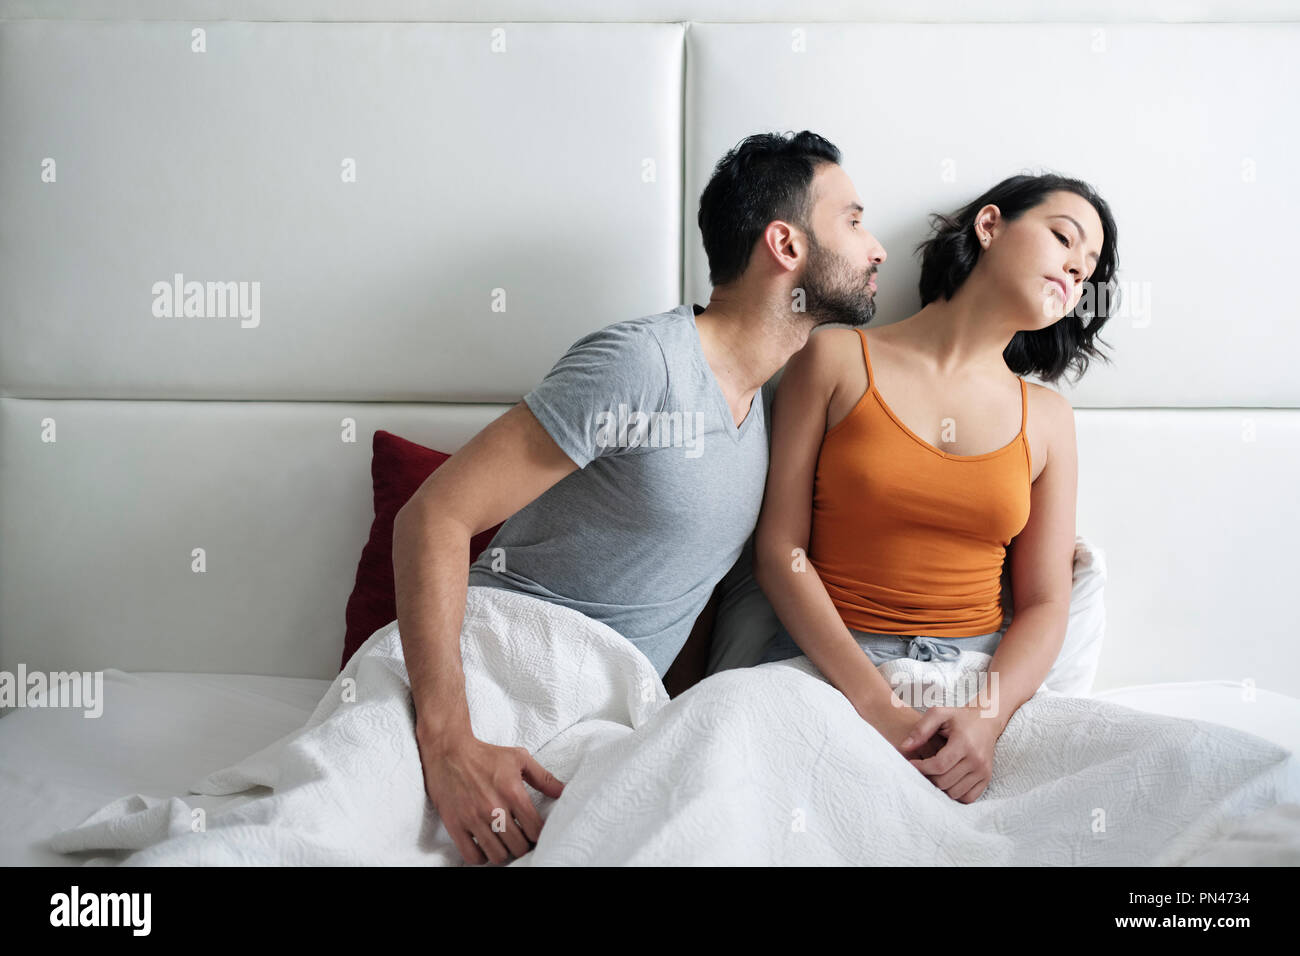 Relationship Problems With Angry Woman In Bed - Stock Image